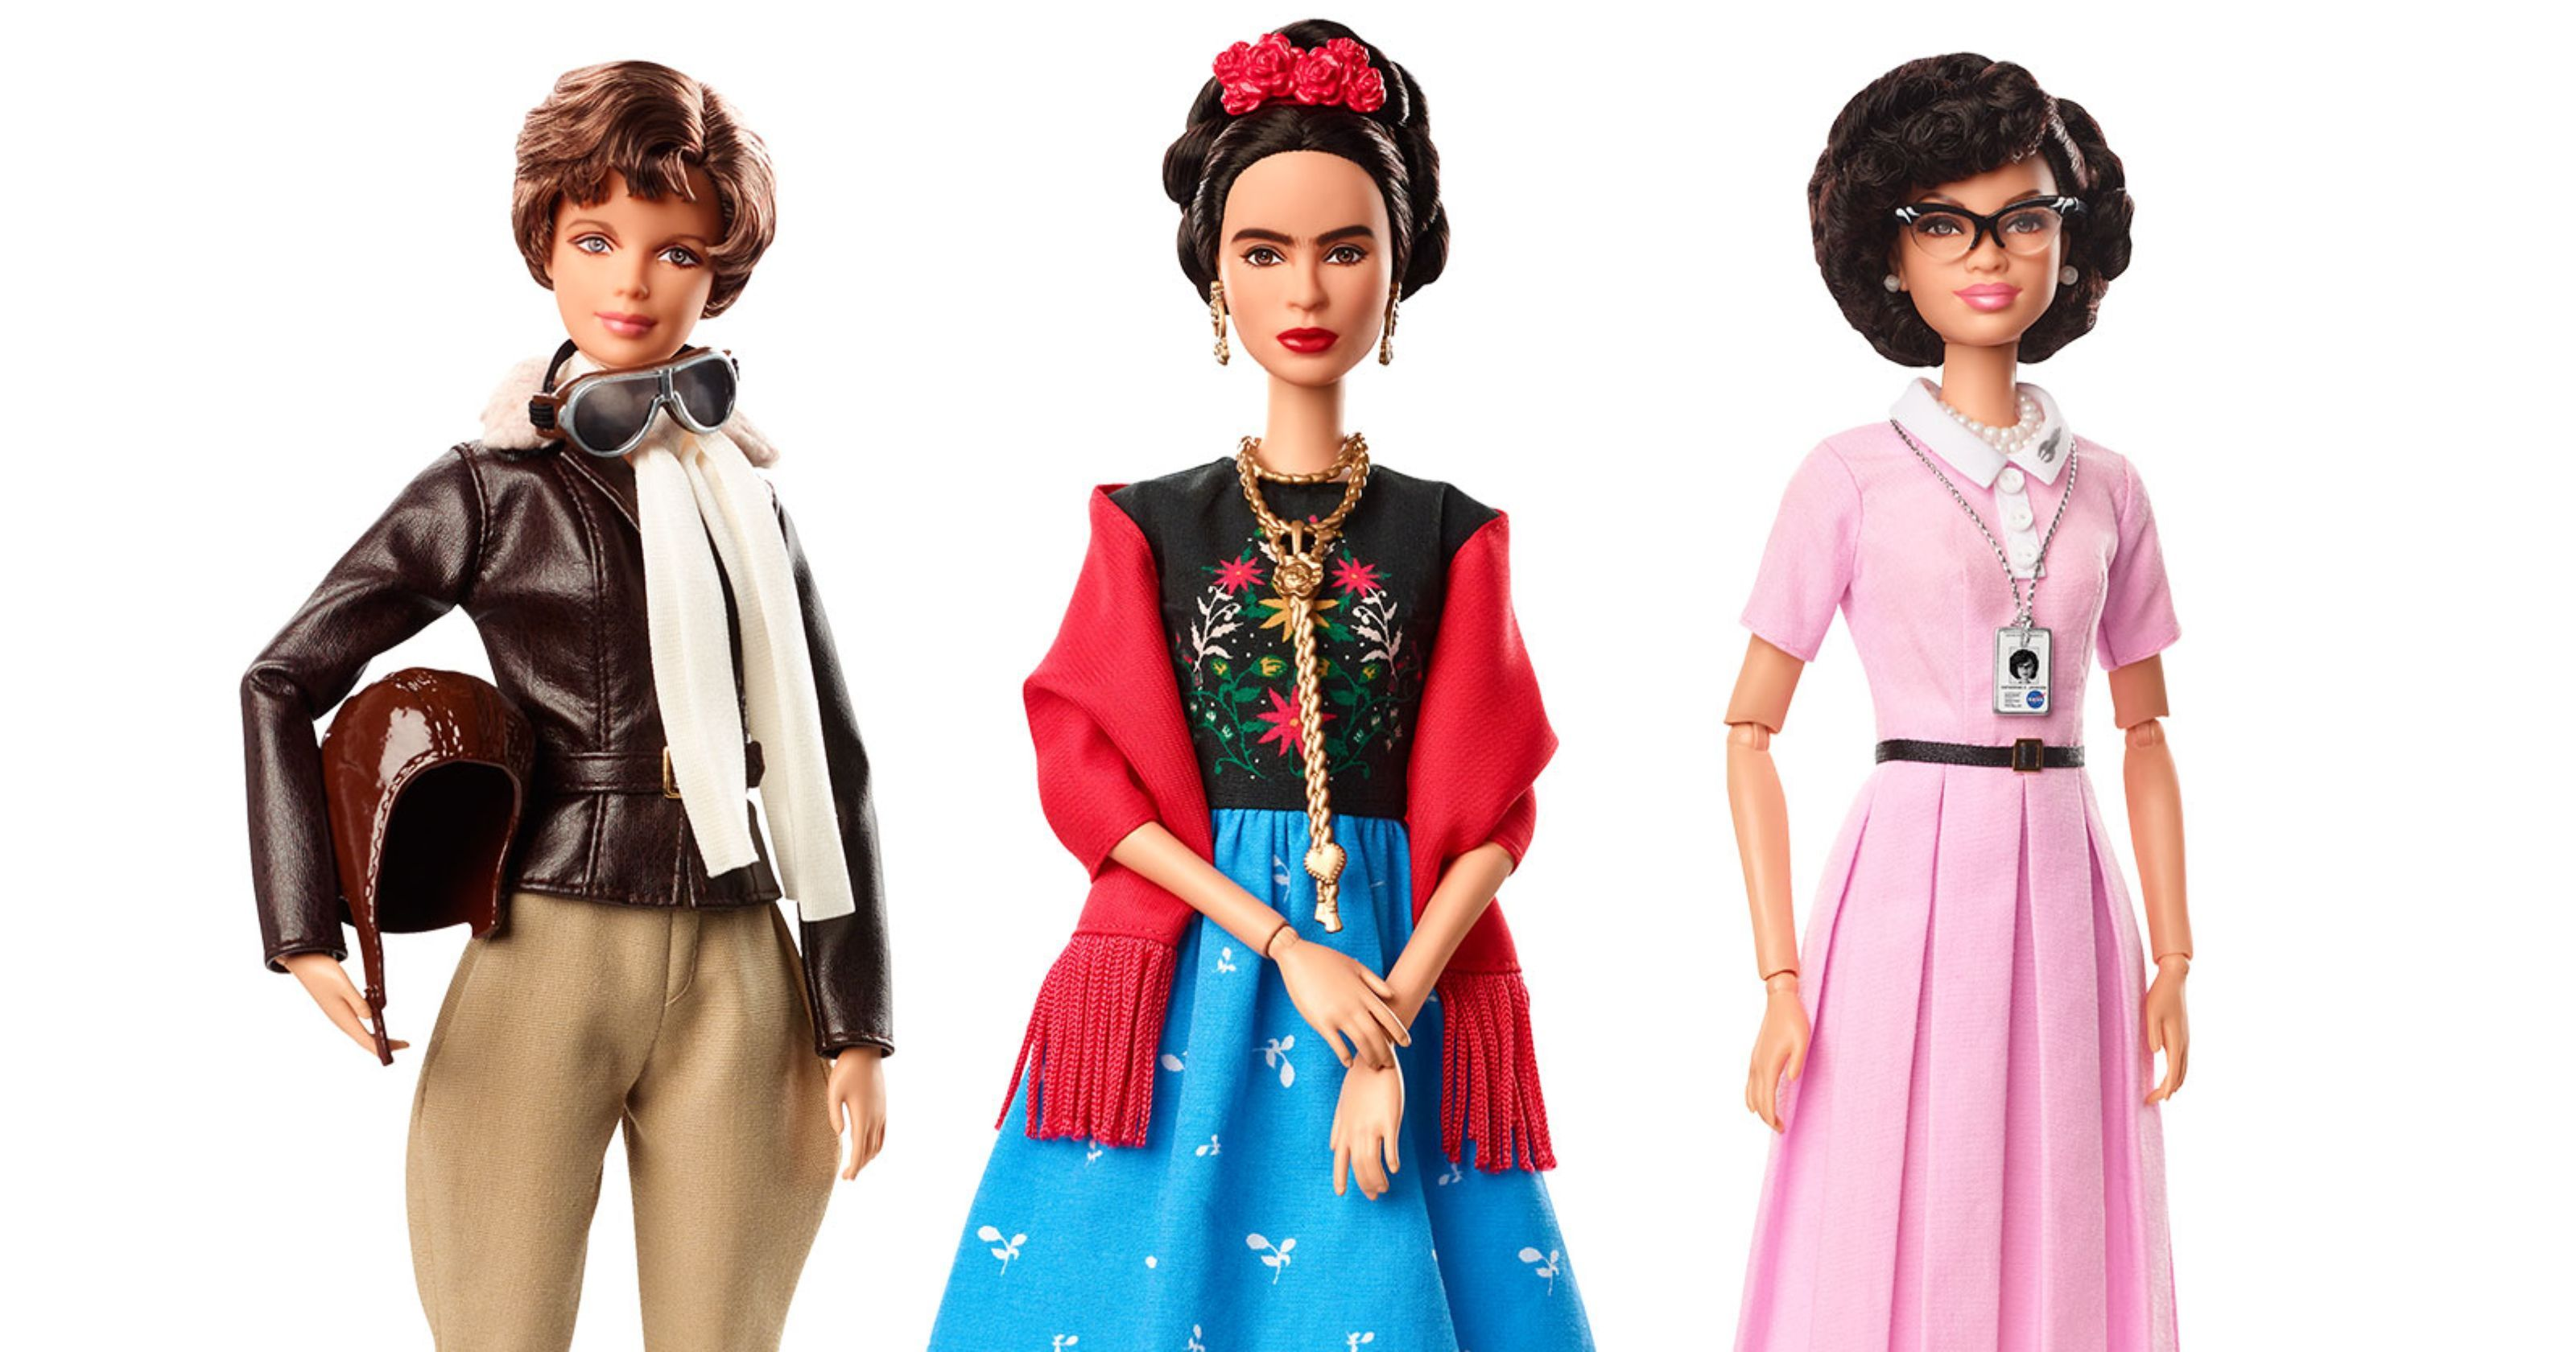 a91707af04 Not Your Mother's Barbie: How Mattel's New Dolls Aspire to Inspire ...